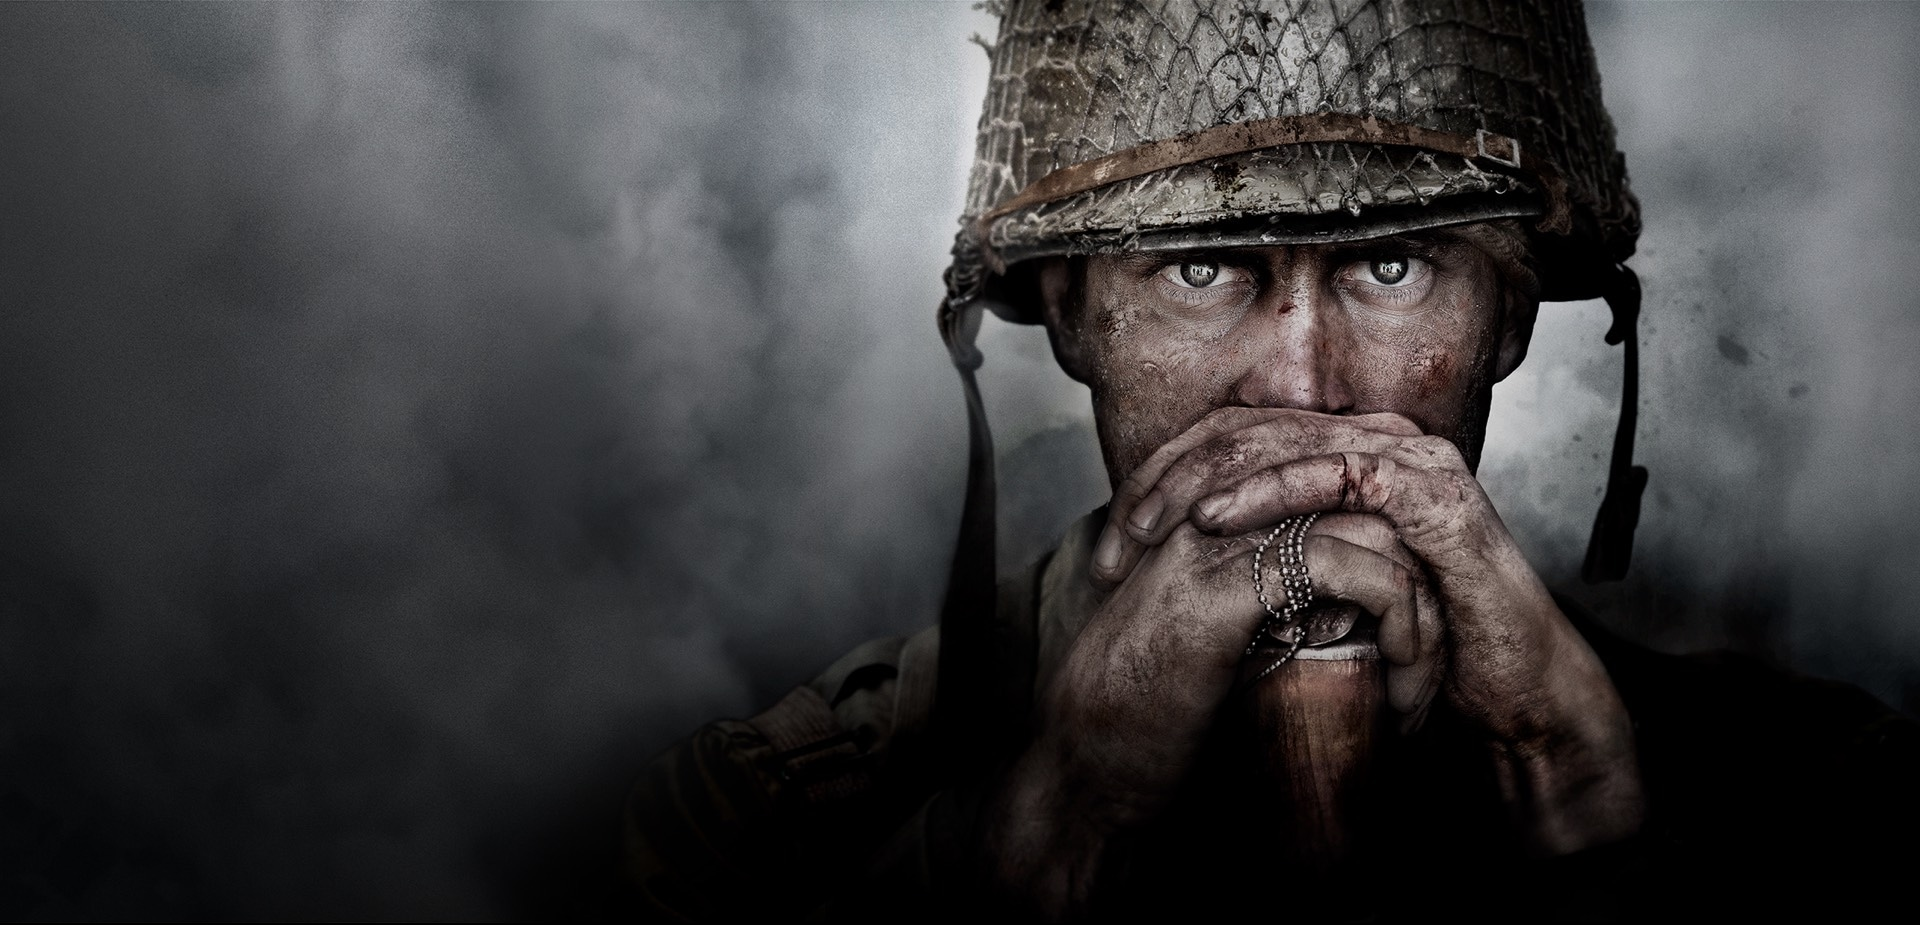 Call of Duty: WWII is going to be polarizing based on its beta screenshot